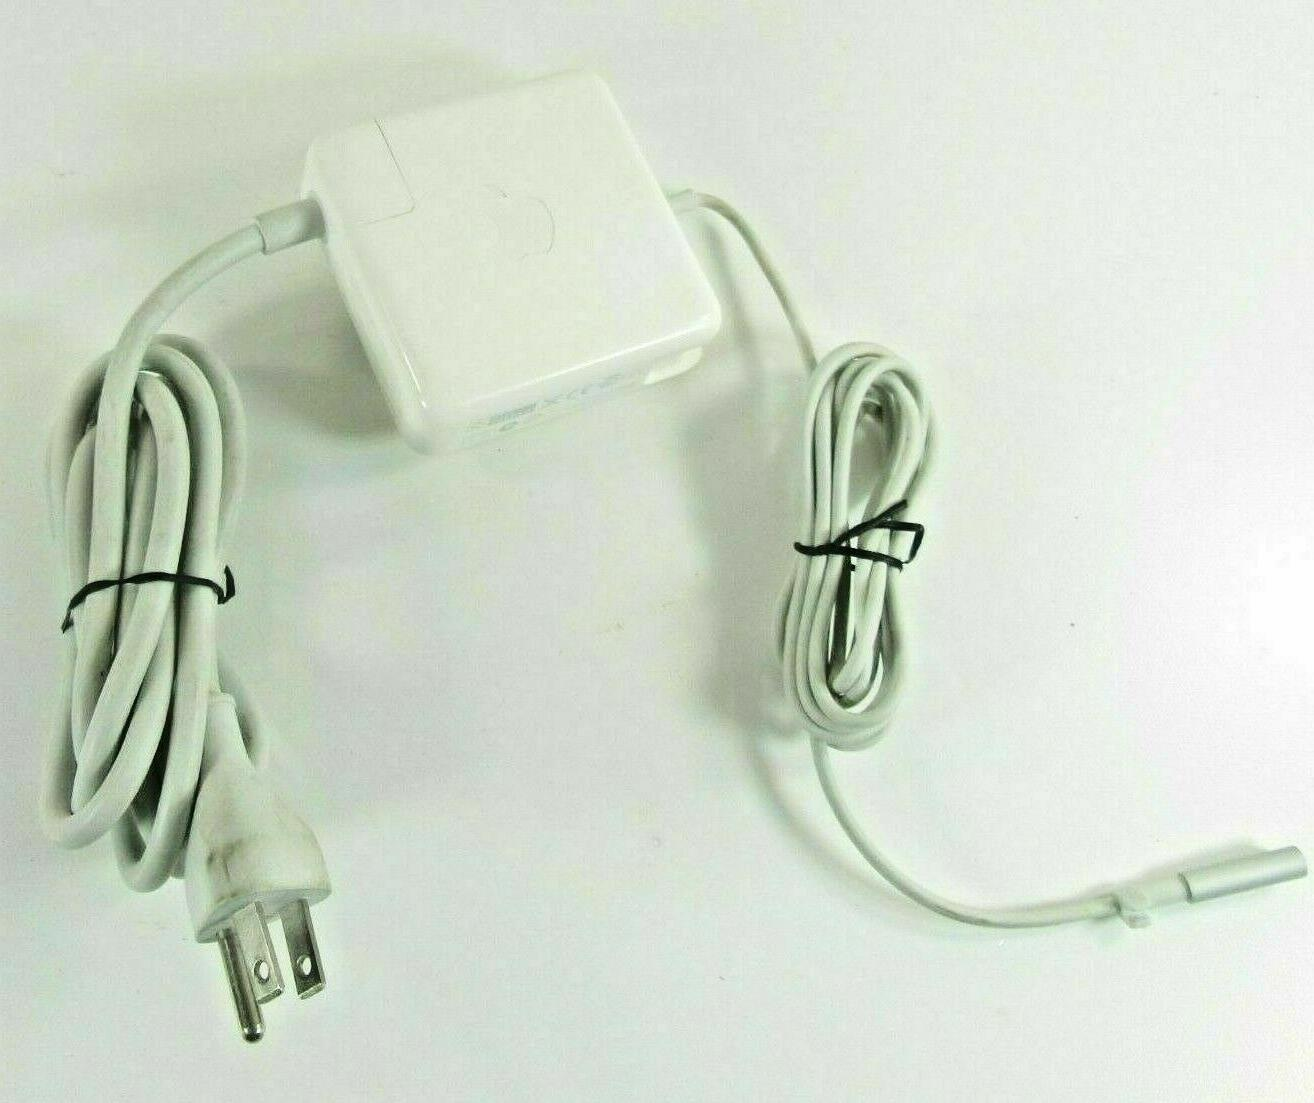 Genuine Apple Magsafe Power Macbook 45W 60W A1184 A1330